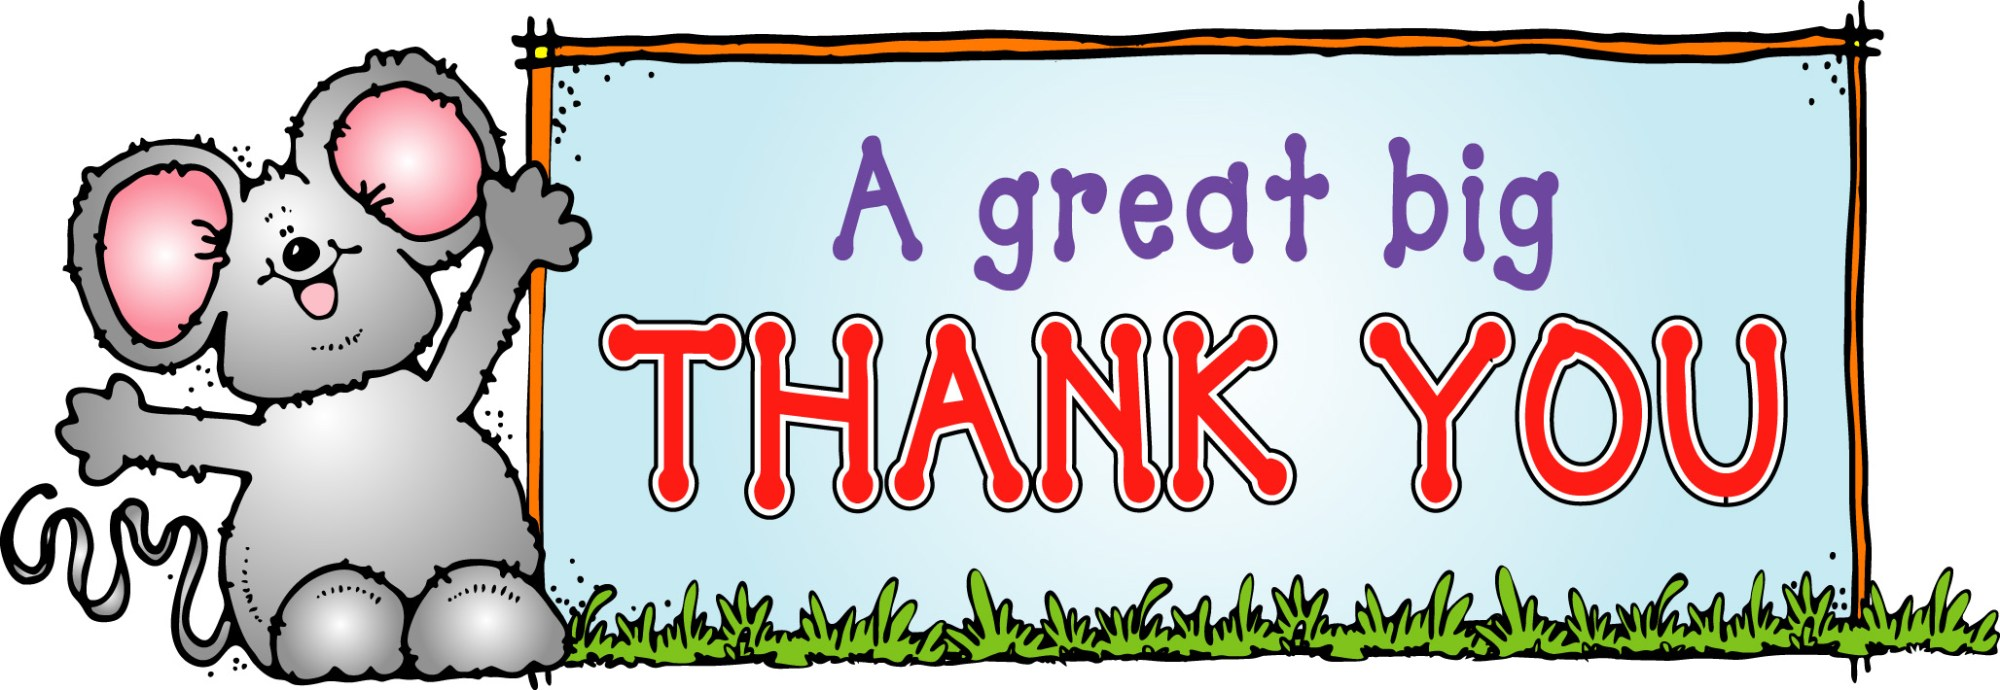 hight resolution of 2056x710 free animated thank you clipart thank you s graphics image